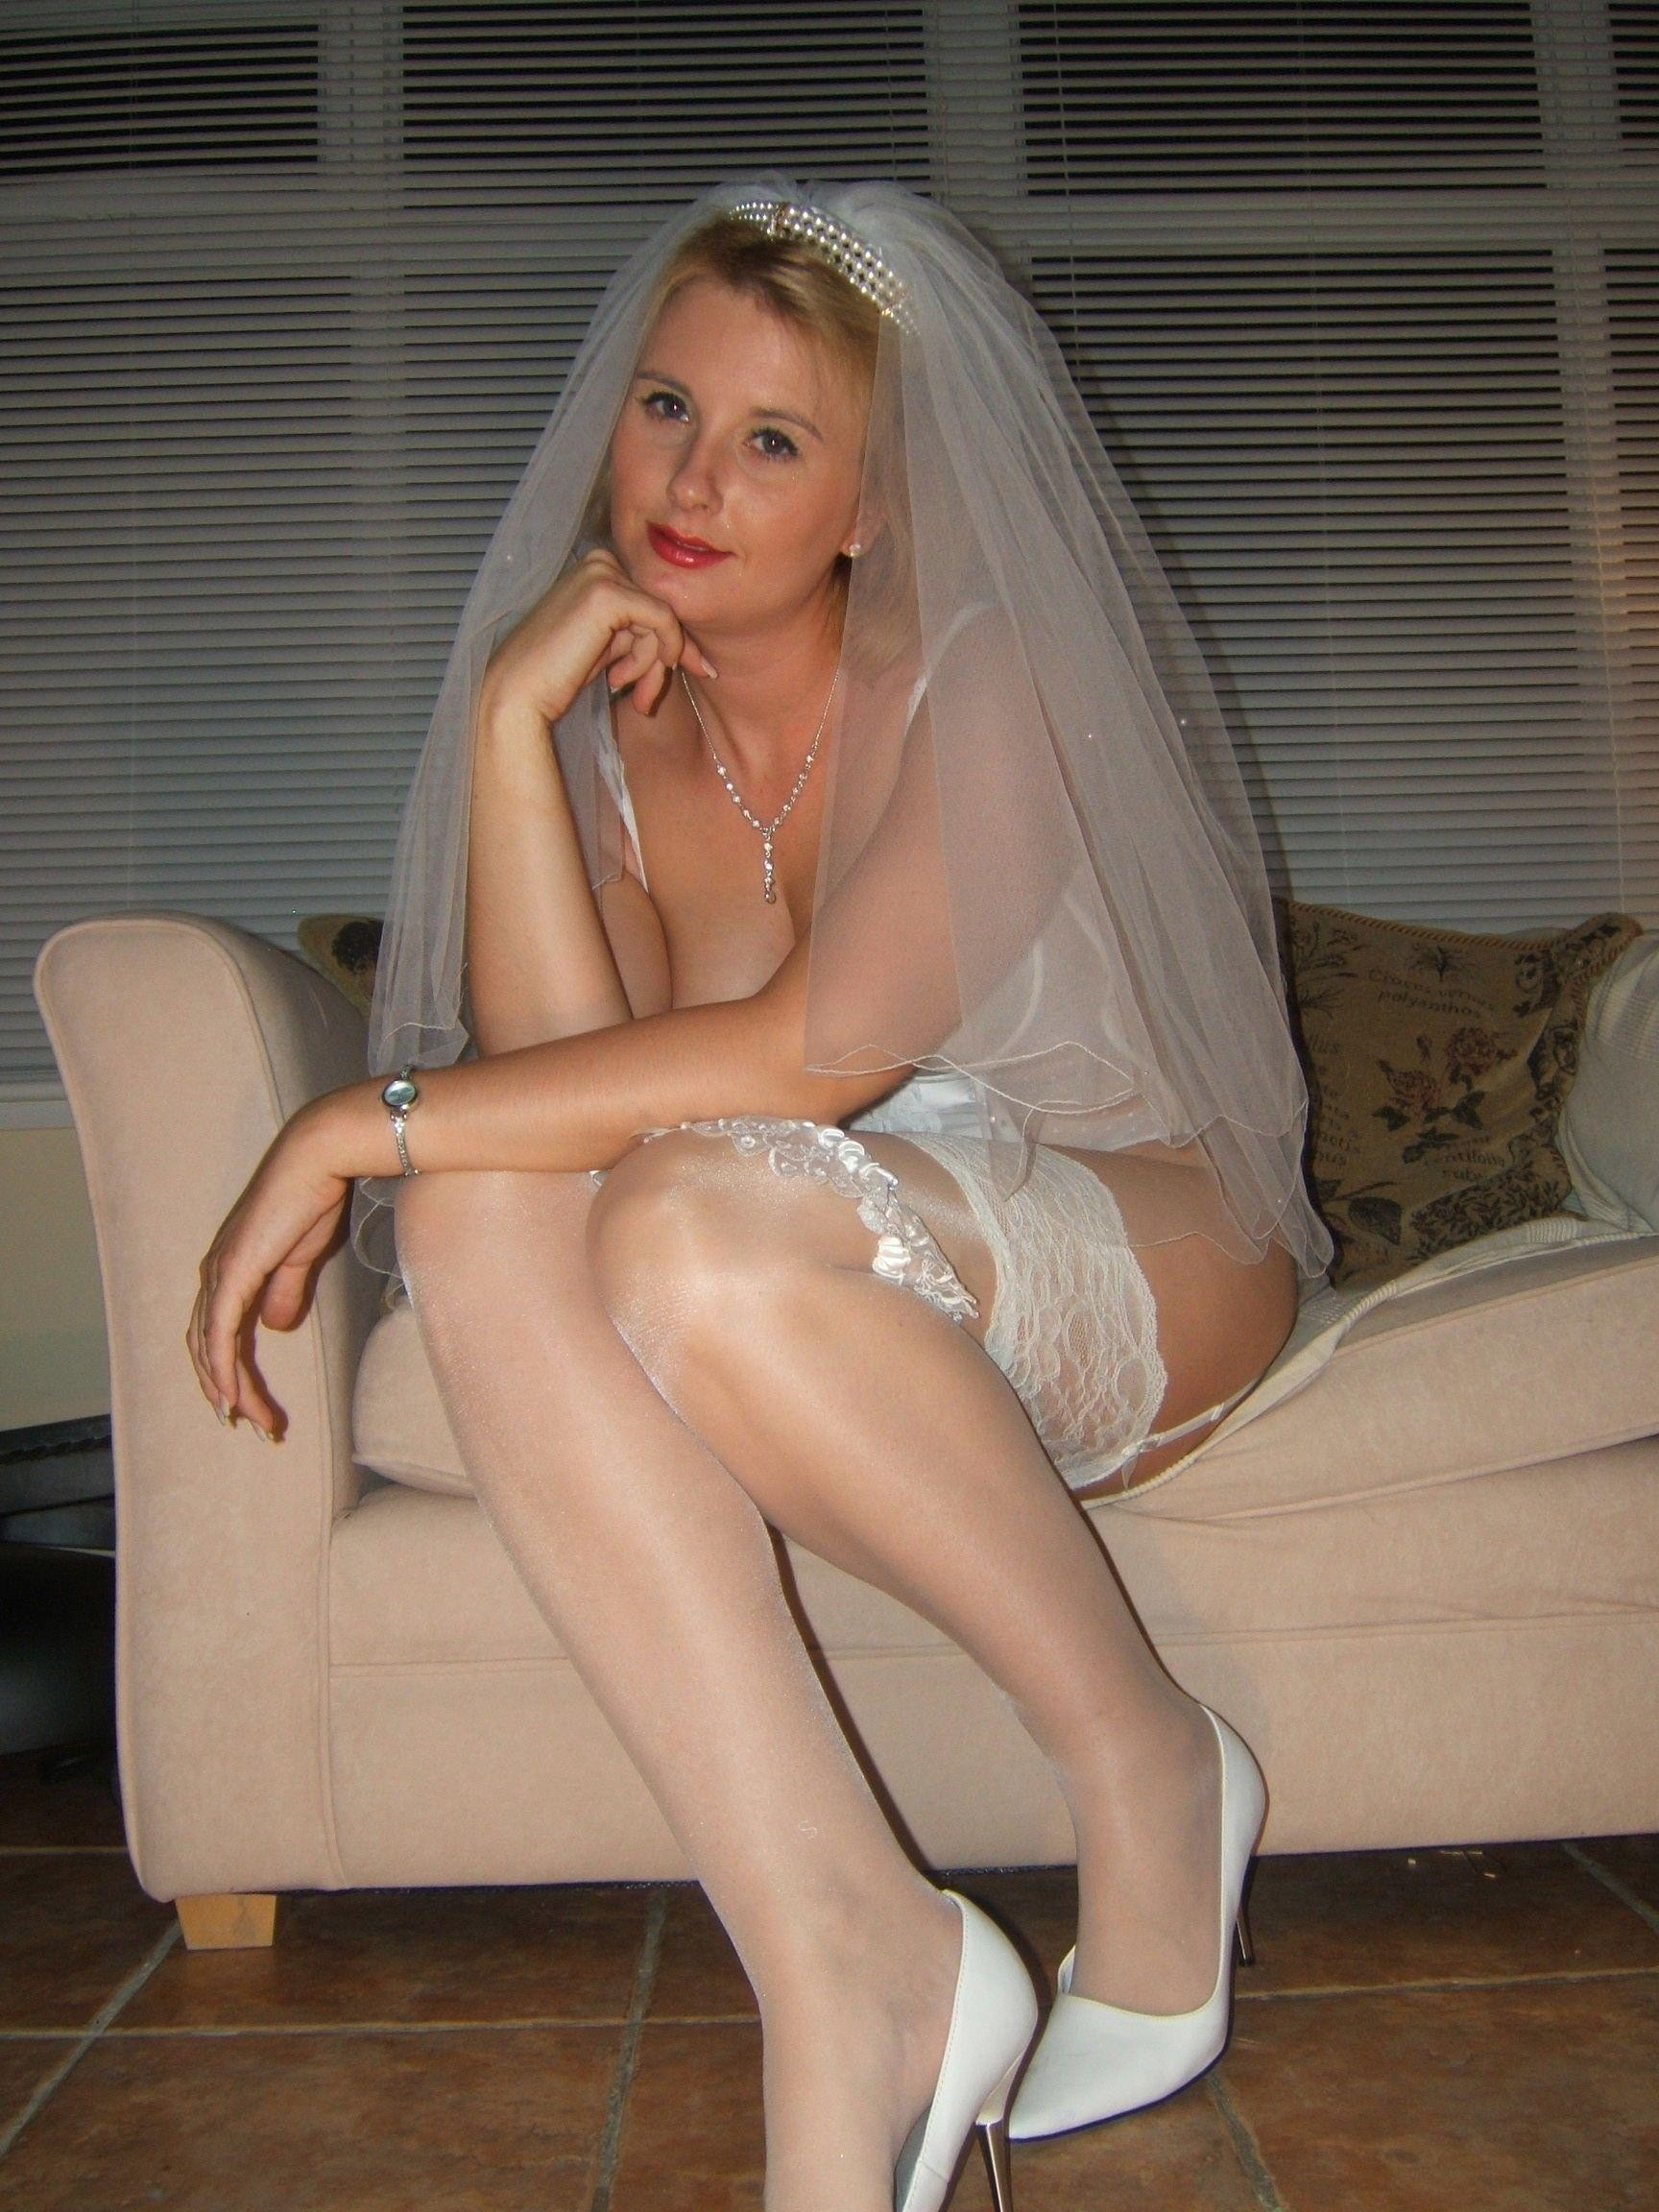 from Dayton blonde slut bride sex